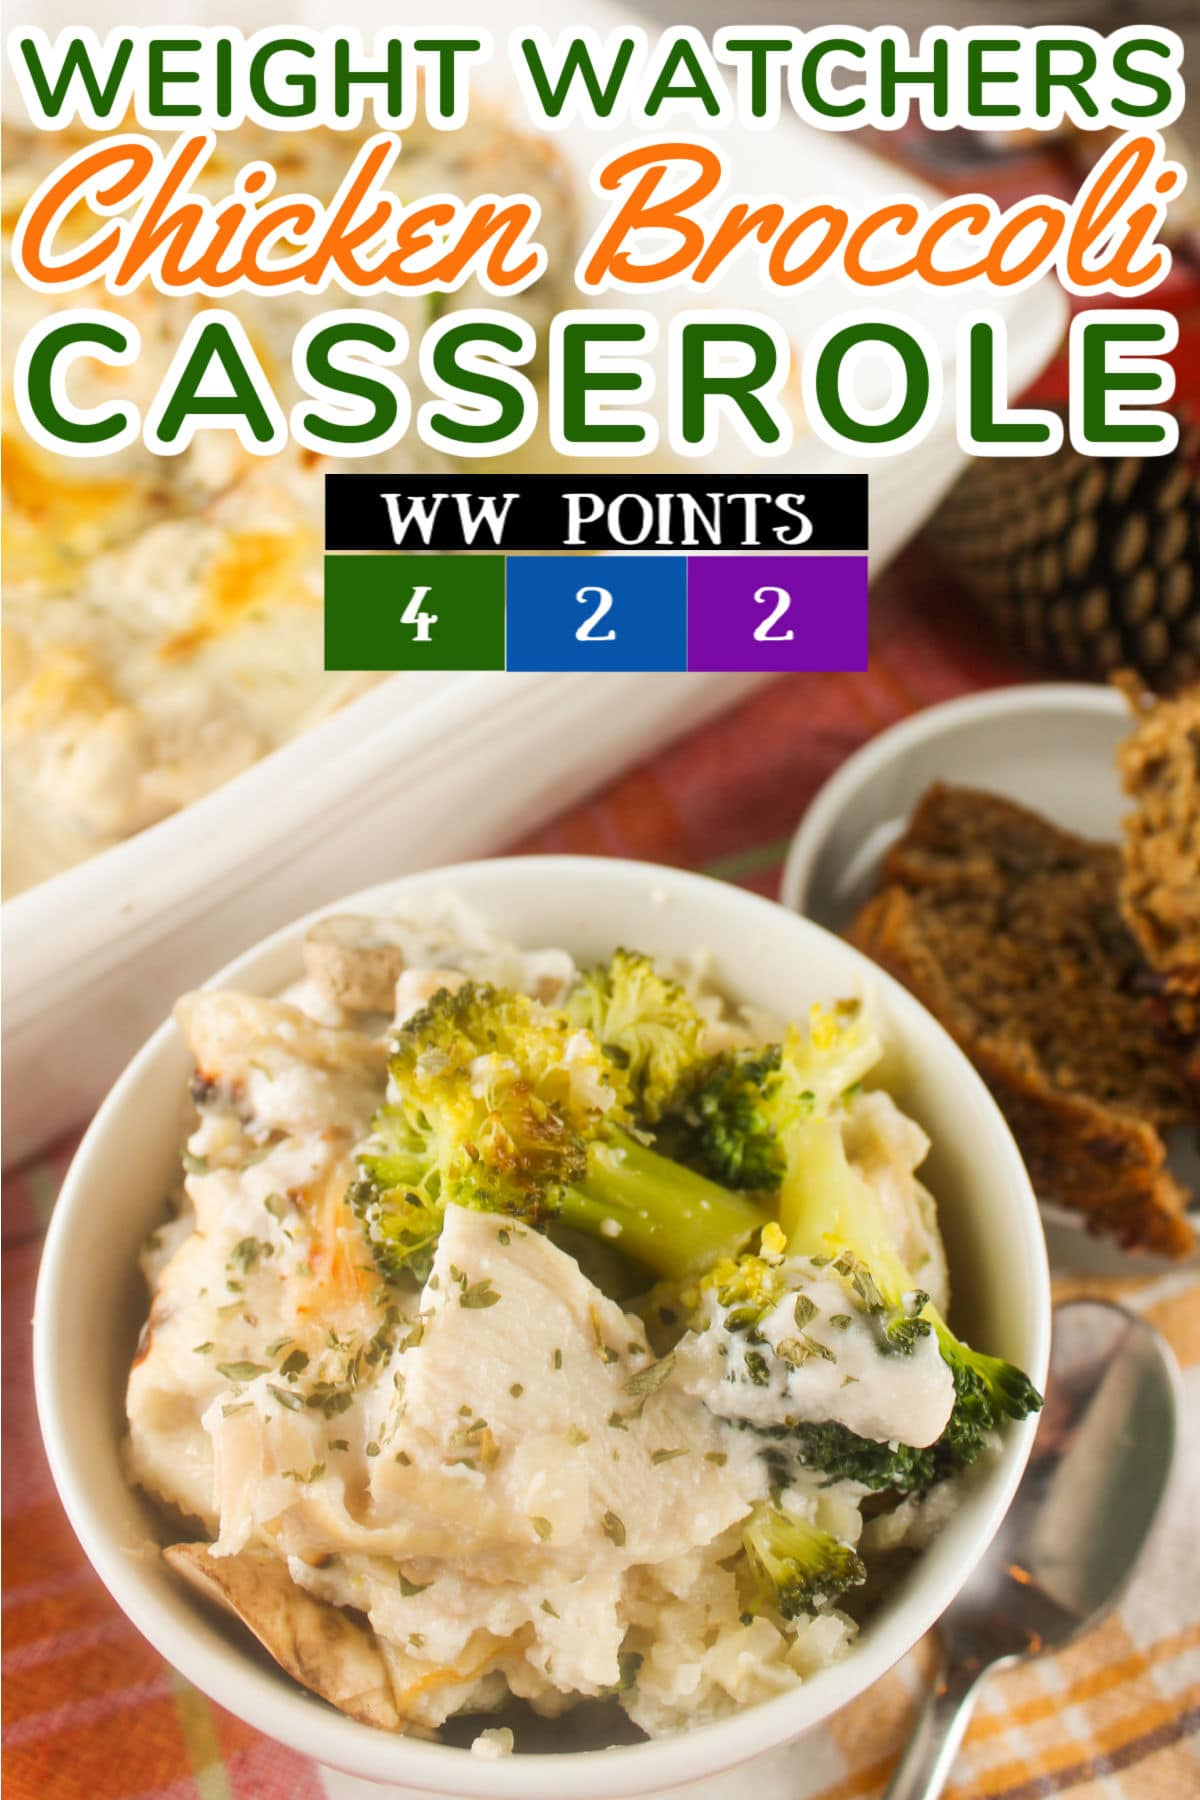 Weight Watchers Chicken Broccoli casserole has all the flavors you love but so much less fat and calories! Swapping out the regular rice for cauliflower rice is a great start - but I have a couple other tweaks you'll have to check out! This serves a family or leaves you with leftovers for a quick lunch!  via @foodhussy